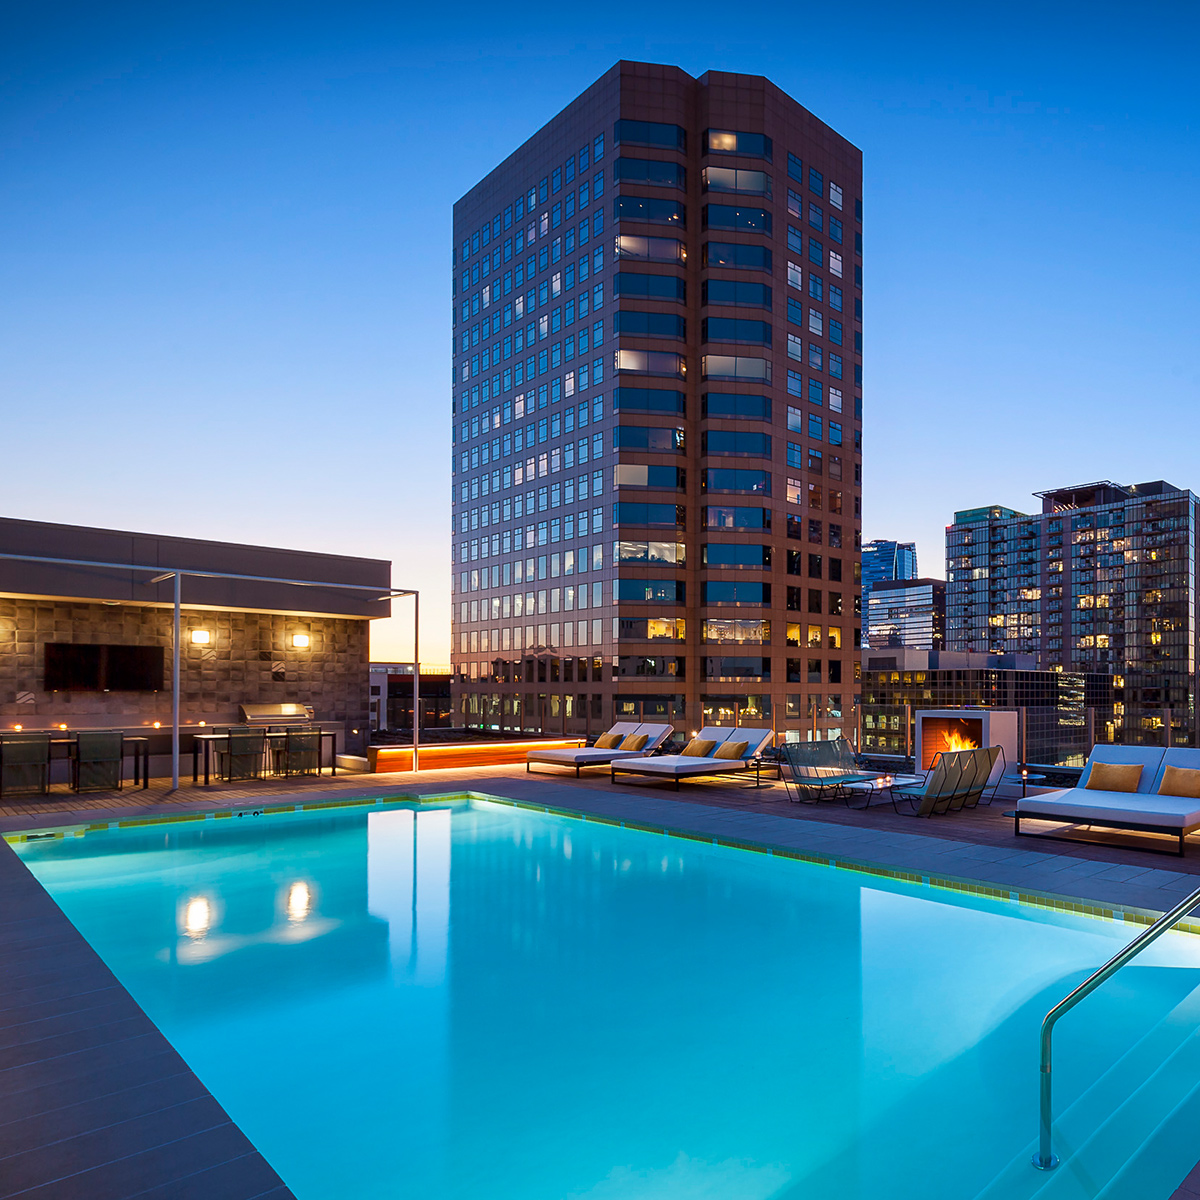 Eighth & Grand Poolside Hangouts